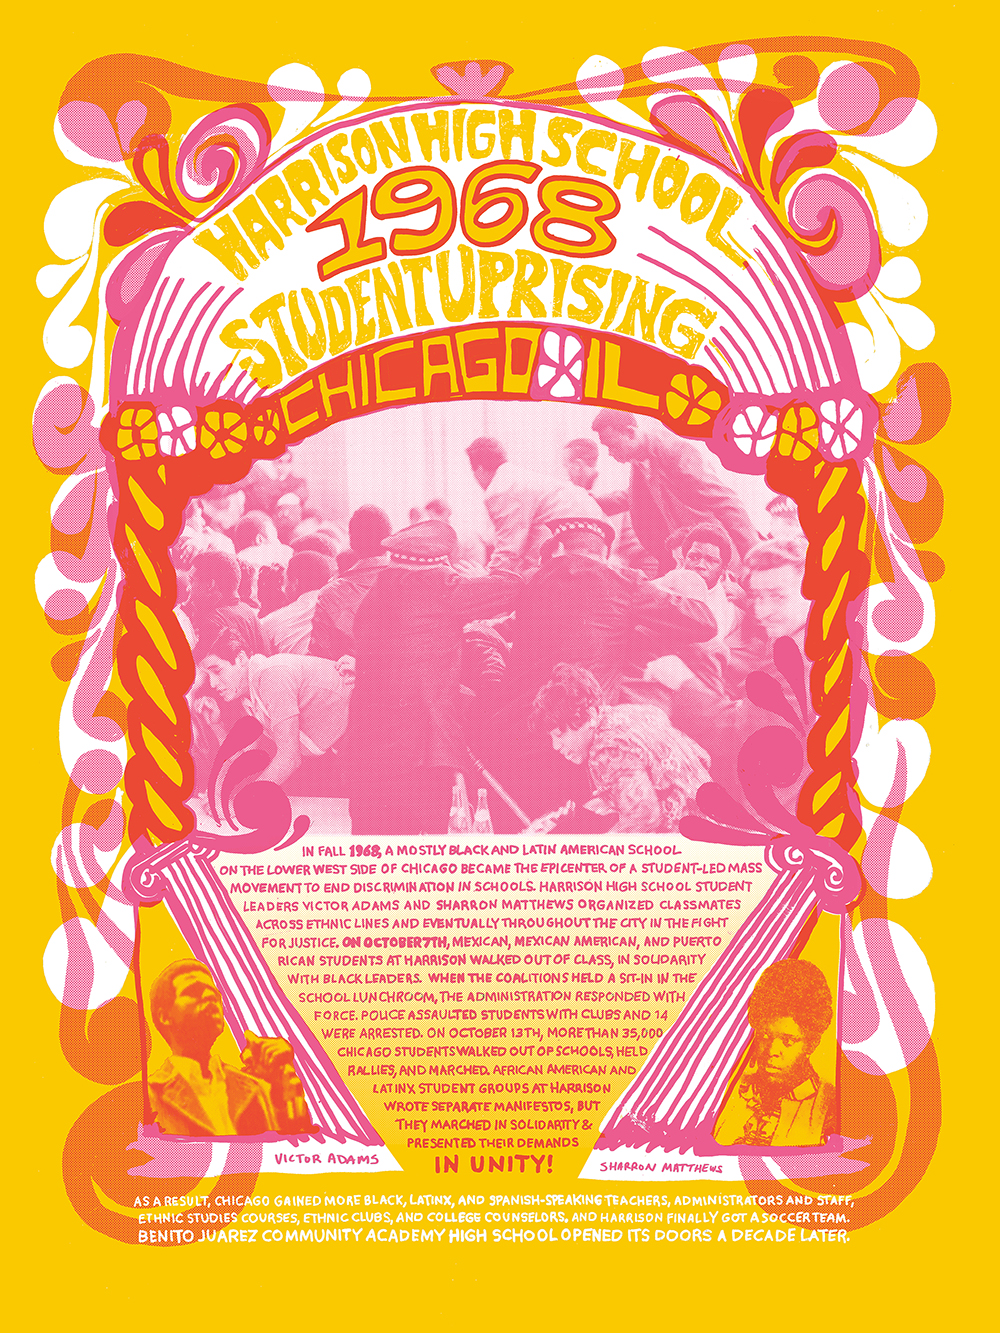 """Image: Nicole Marroquin, Harrison High School Student Uprising, 1968, silkscreen on paper, 18x24"""", 2017. Set on a yellow-orange background, a color print in red, pink and white ink contains text describing the student uprising, as well as an archival photograph of Chicago police intervening with students. Image courtesy of the artist."""